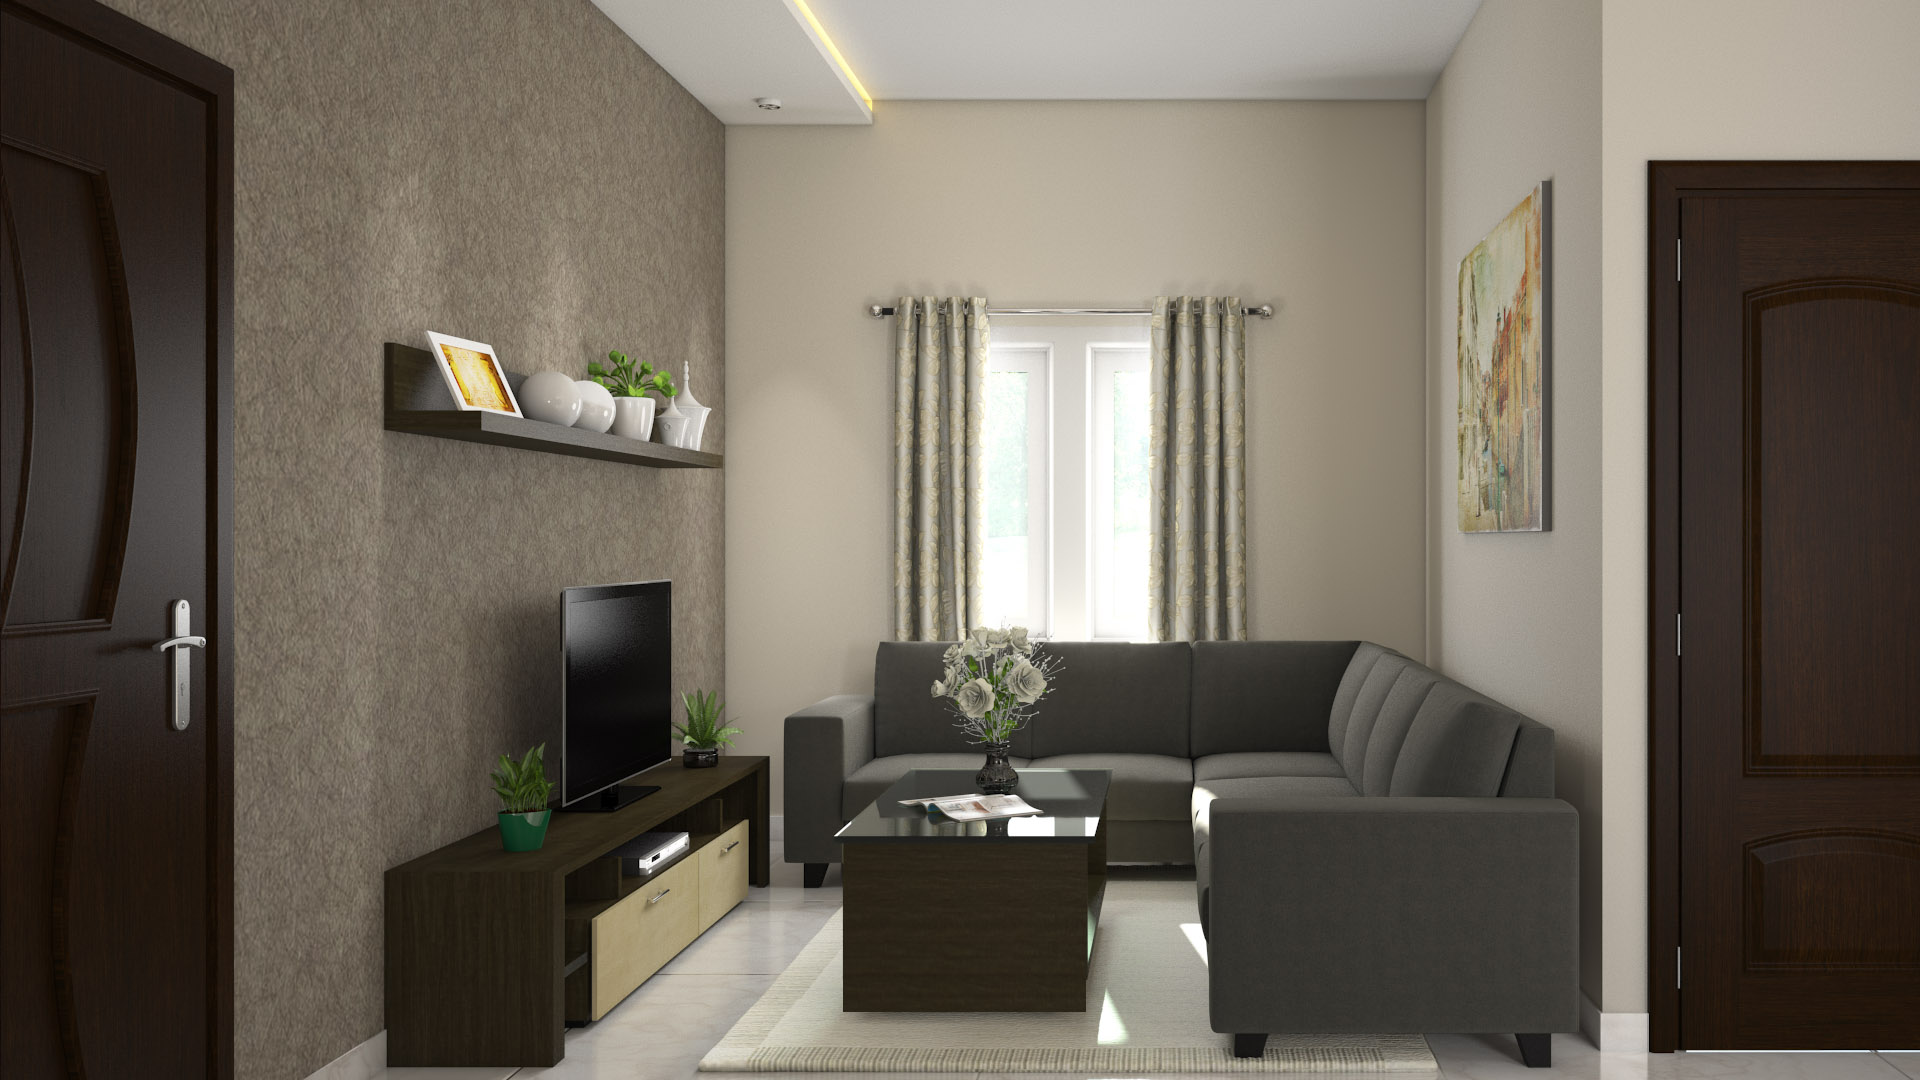 latest modern furniture interior designs On 2 living rooms interior